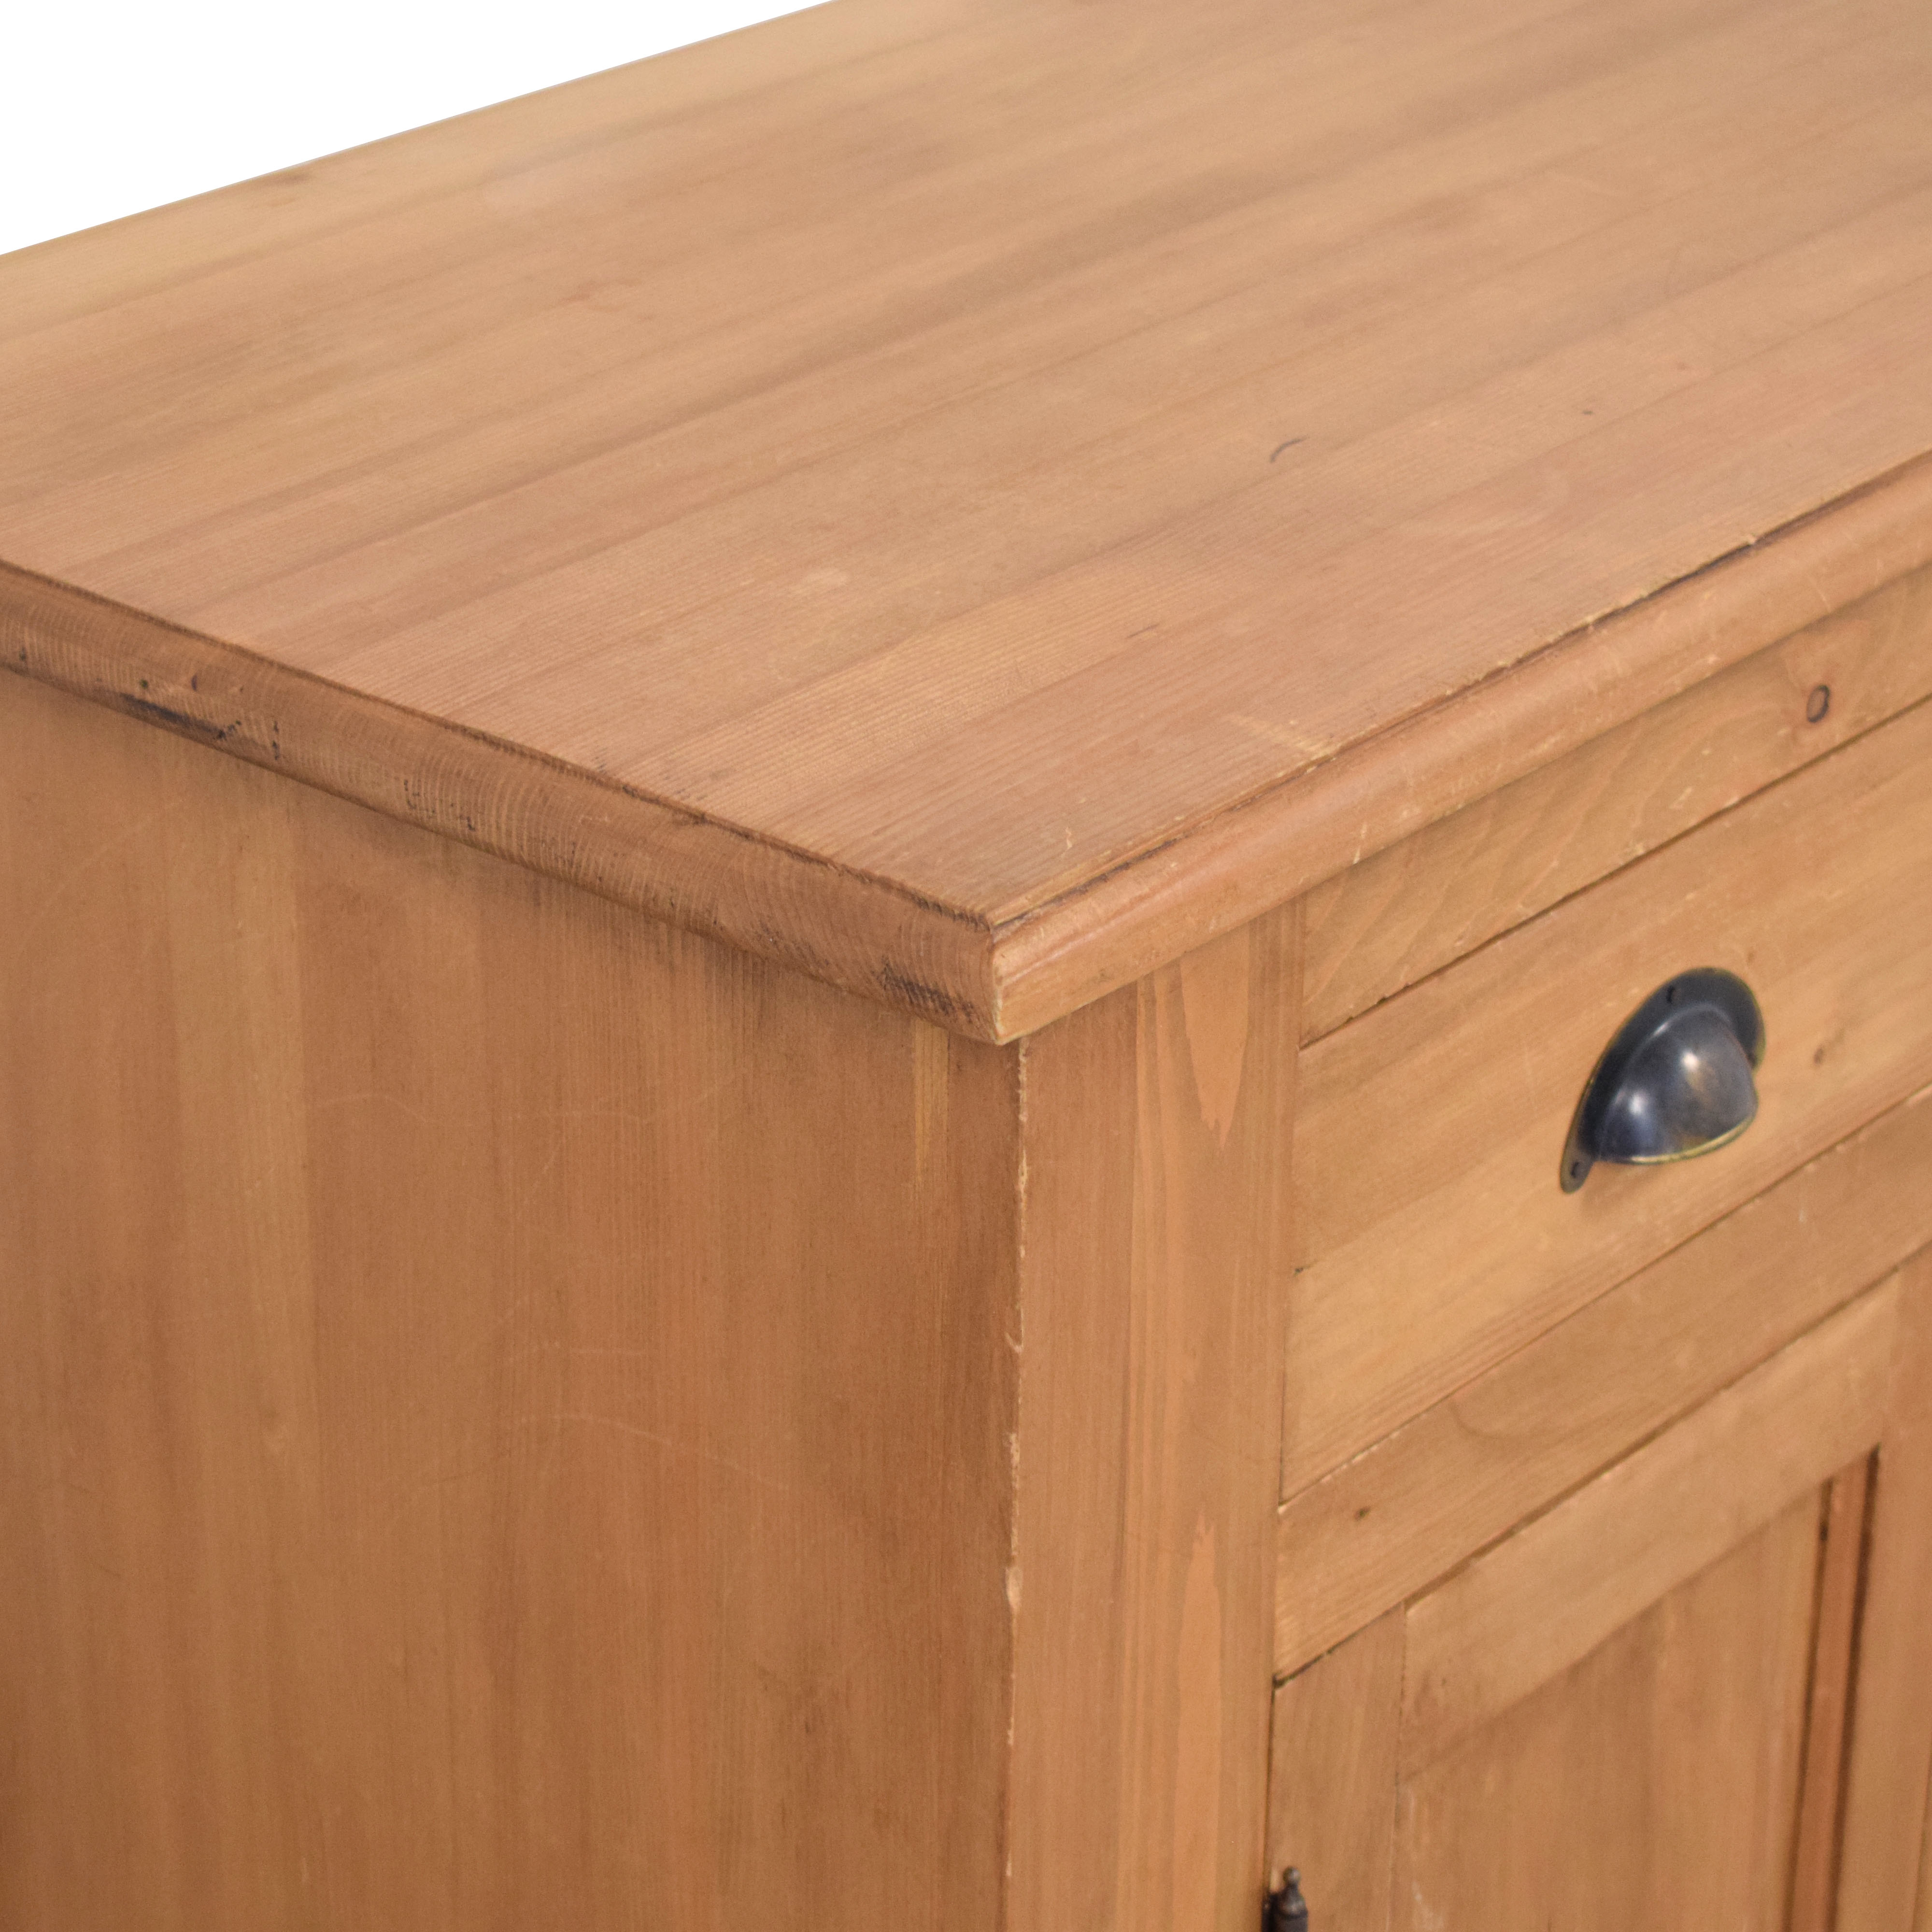 Wooden Cabinet with Four Drawers used